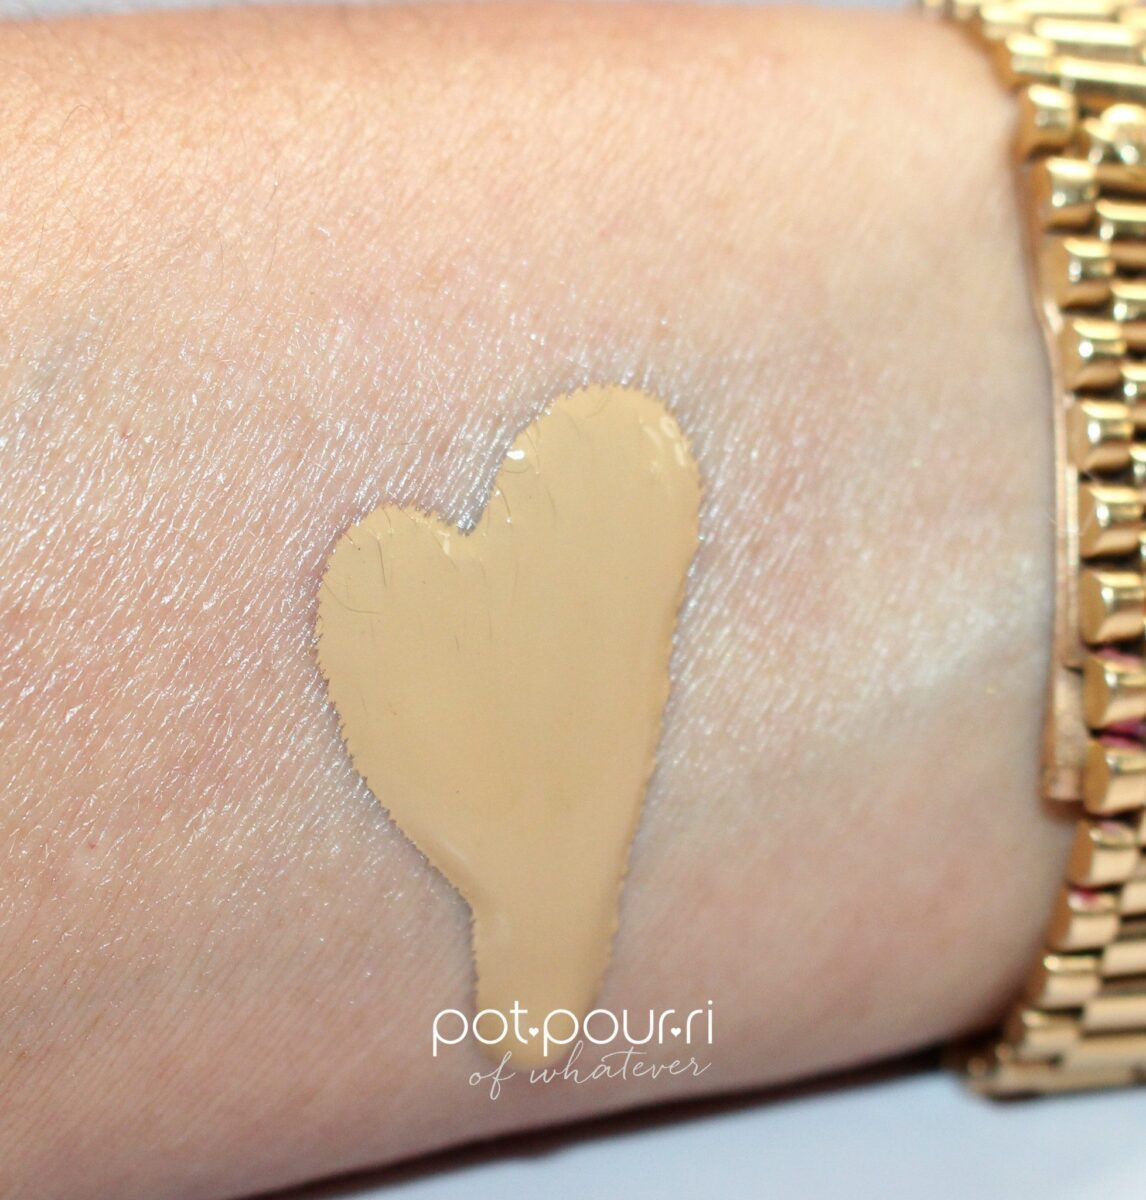 A heart-shaped swatch of the Luminous Silk Microfil formula